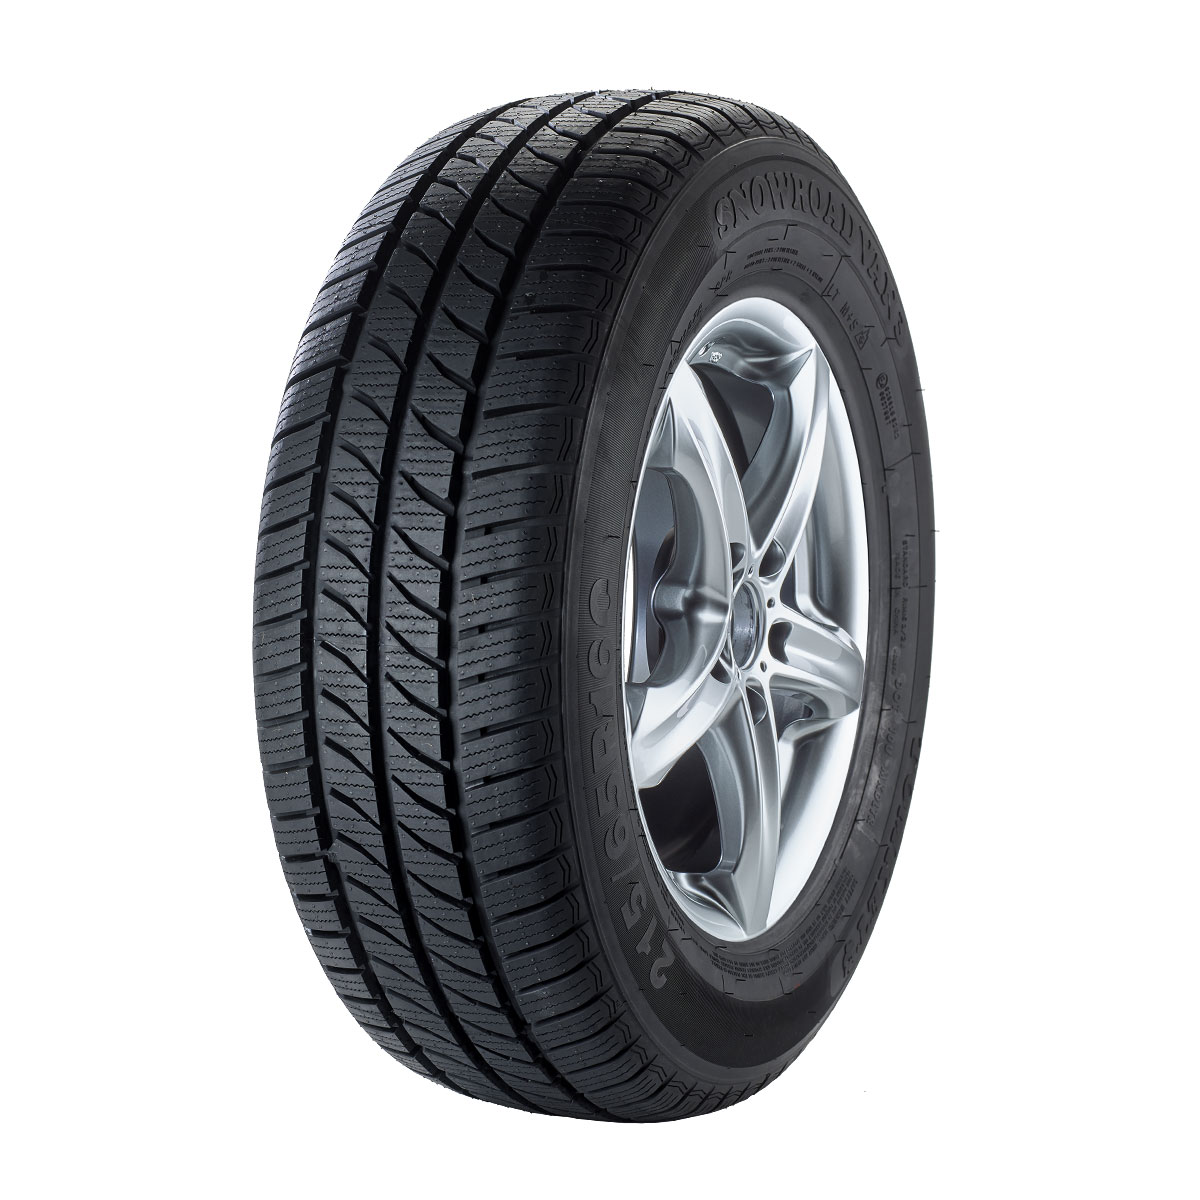 Gomme Nuove Tomket 215/60 R16C 103T 6PR SNOWROAD VAN 3 M+S pneumatici nuovi Invernale